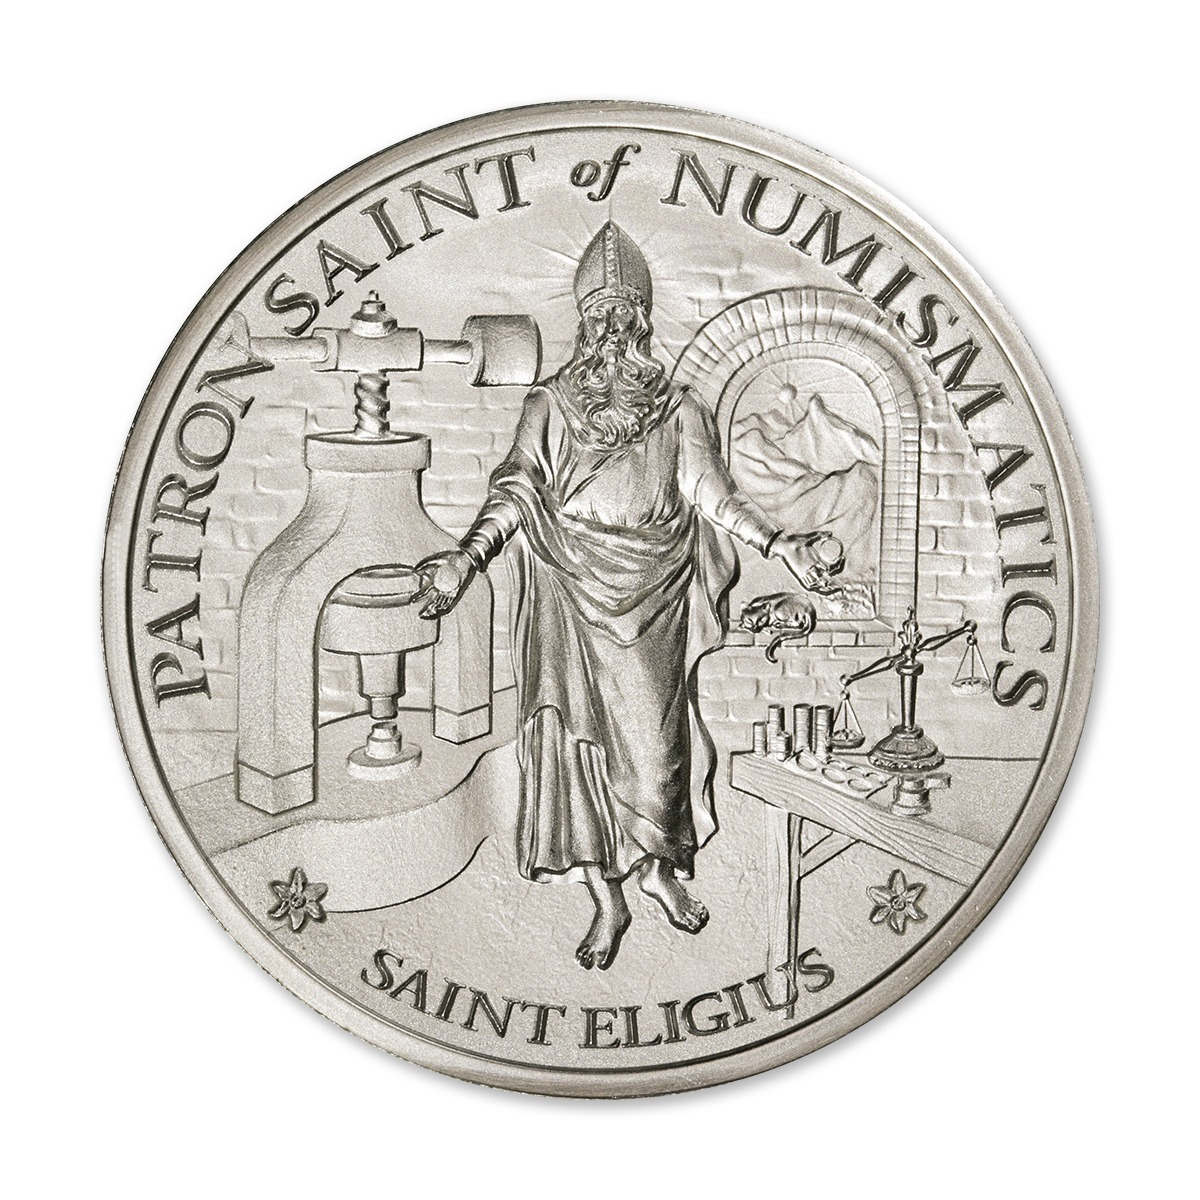 SAINT ELIGIUS – 5 TROY OUNCE – 50MM – LIMITED MINTAGE: 500